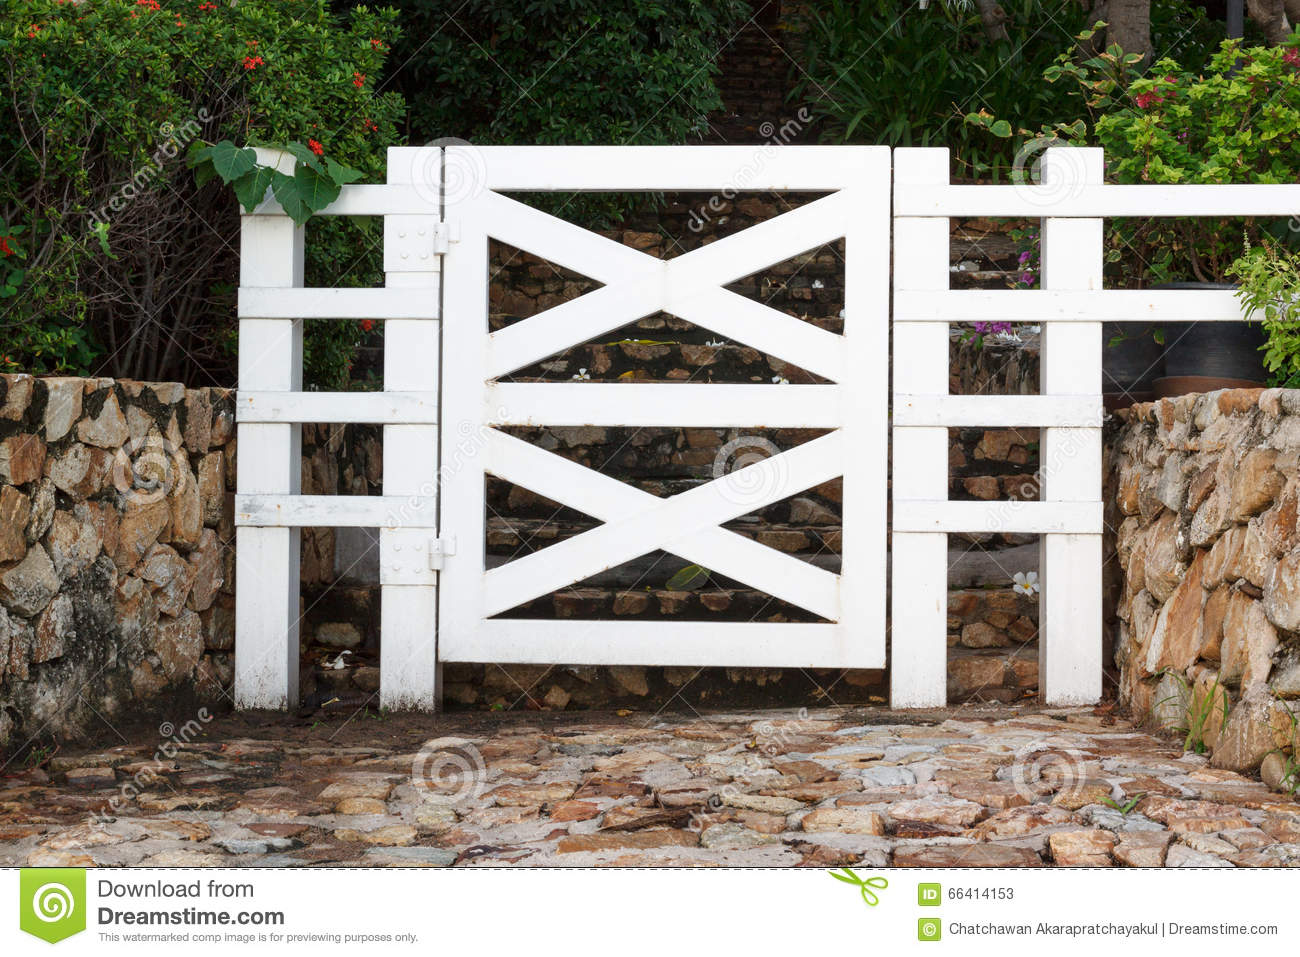 Porte de jardin en bois blanche photo stock image 66414153 for Blanche porte salon de jardin